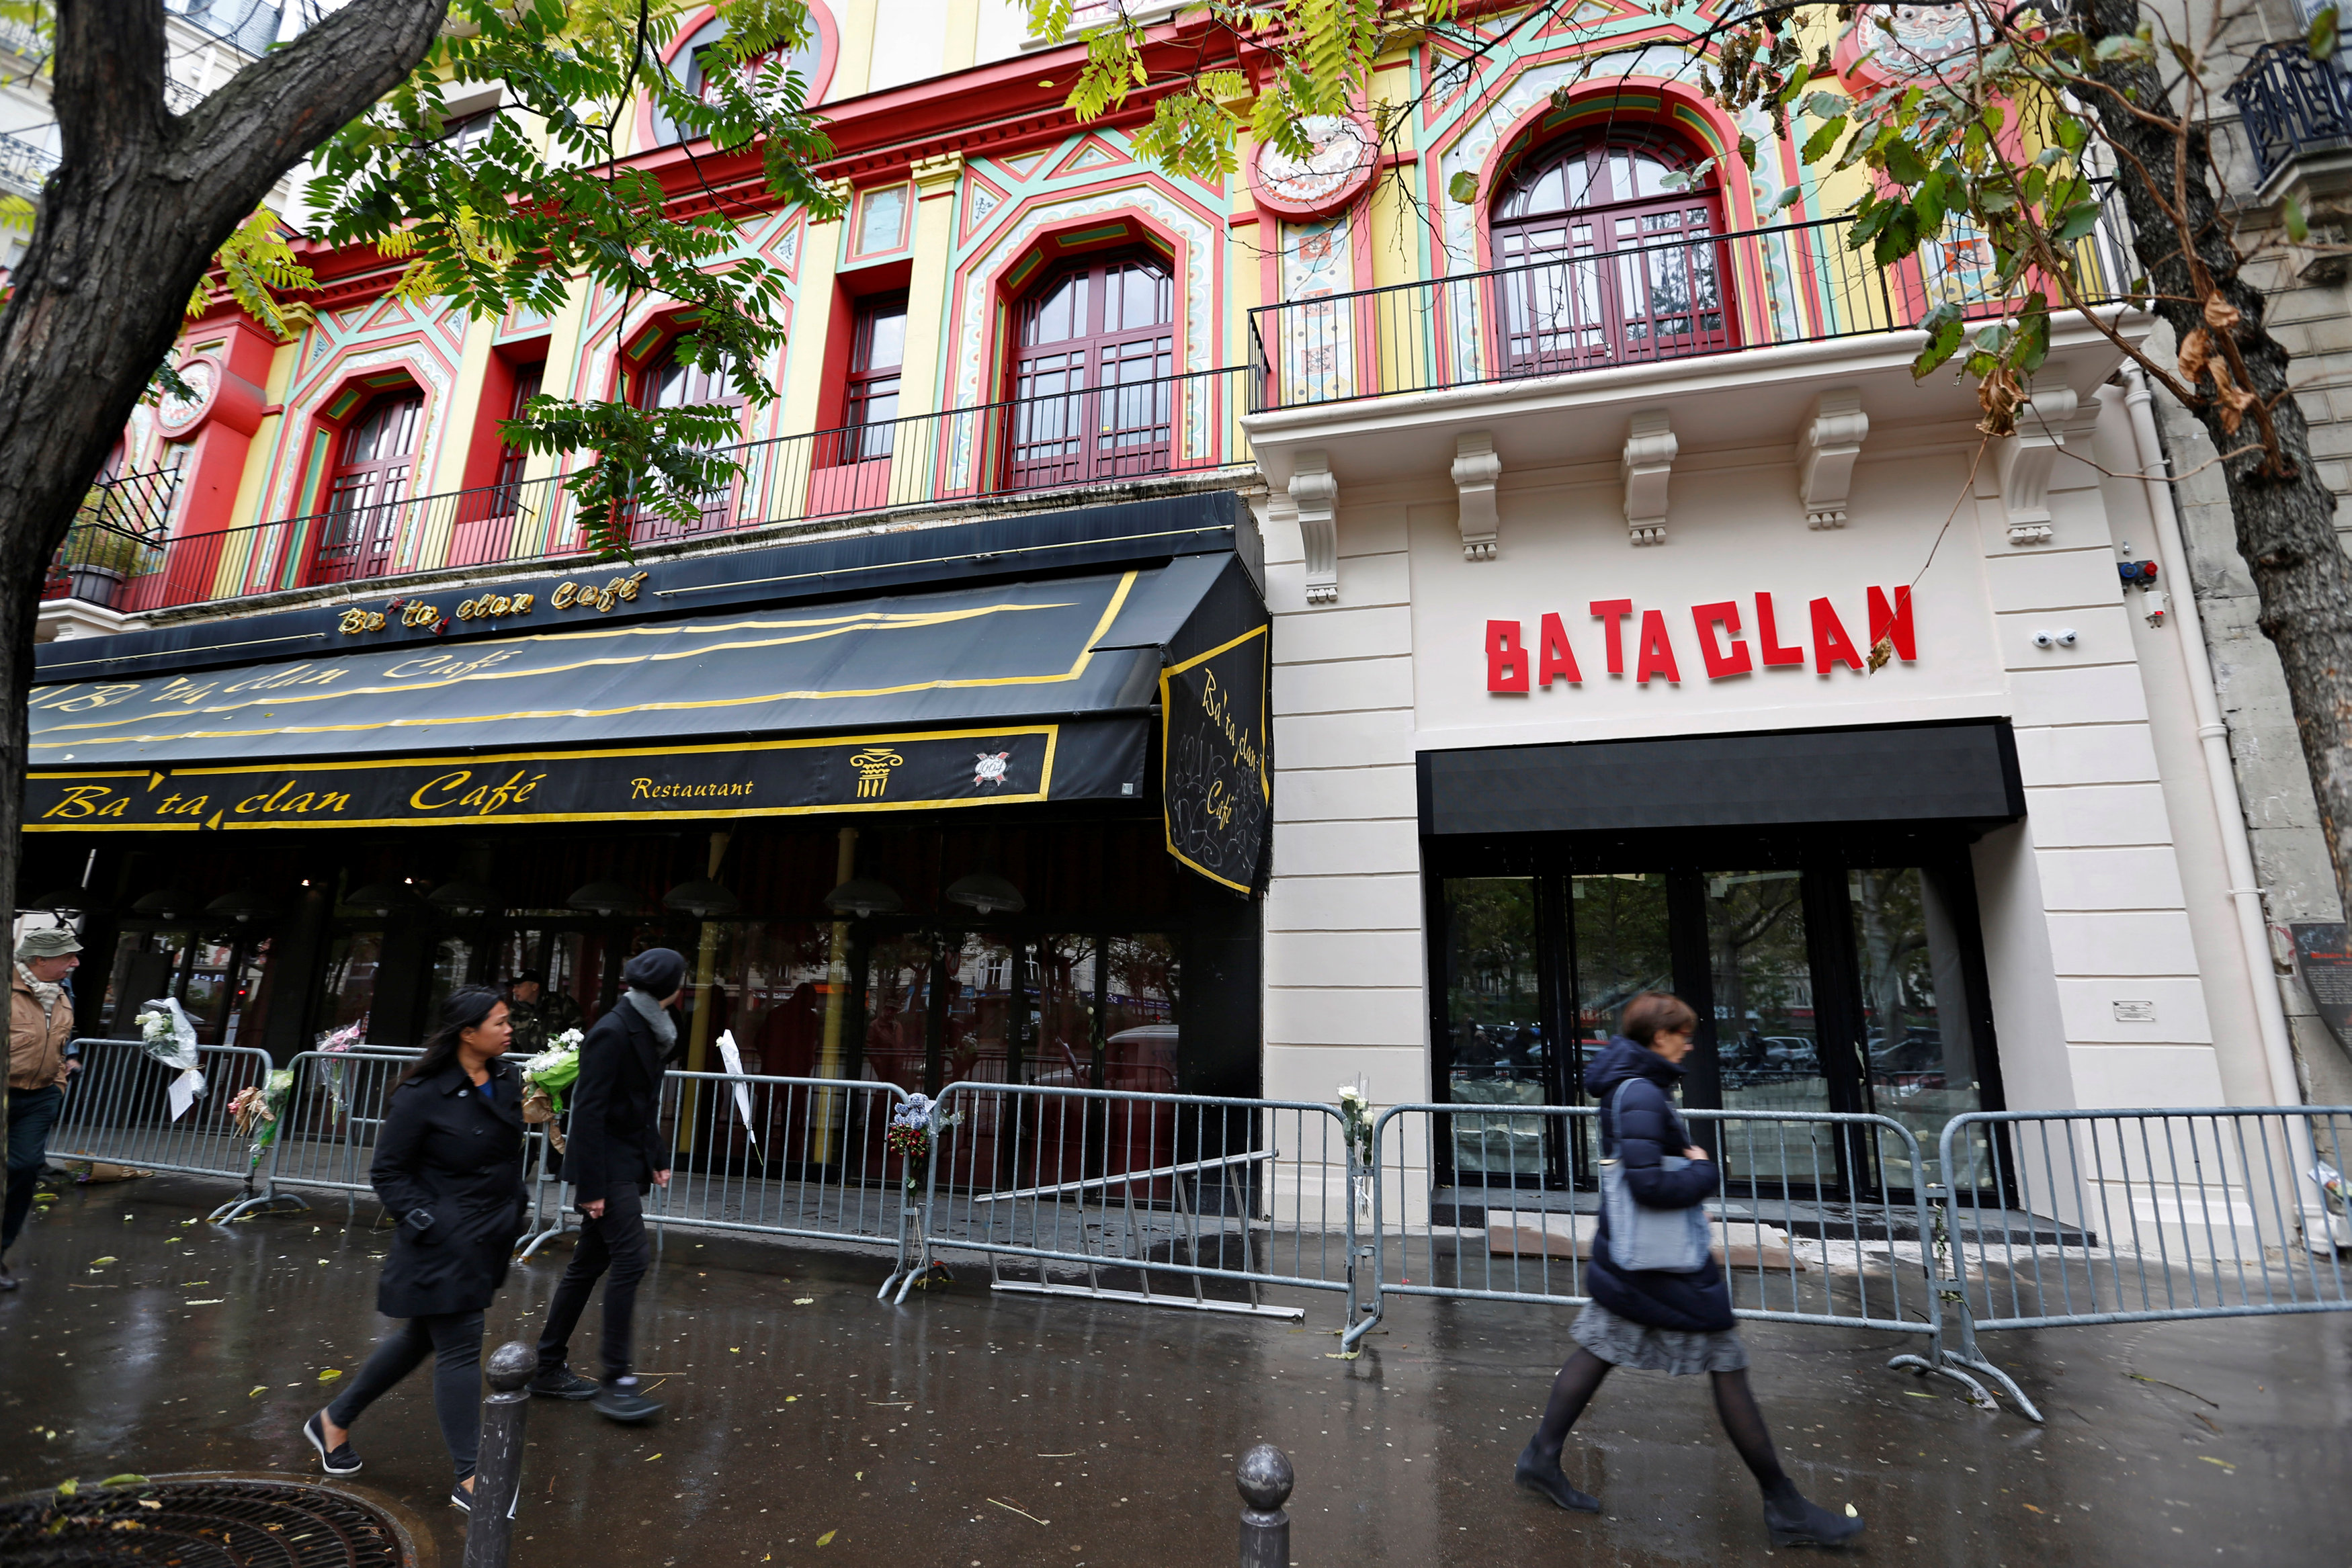 People walk past the Bataclan Cafe and the new facade of the Bataclan concert hall almost one year after a series of attacks at several sites in Paris